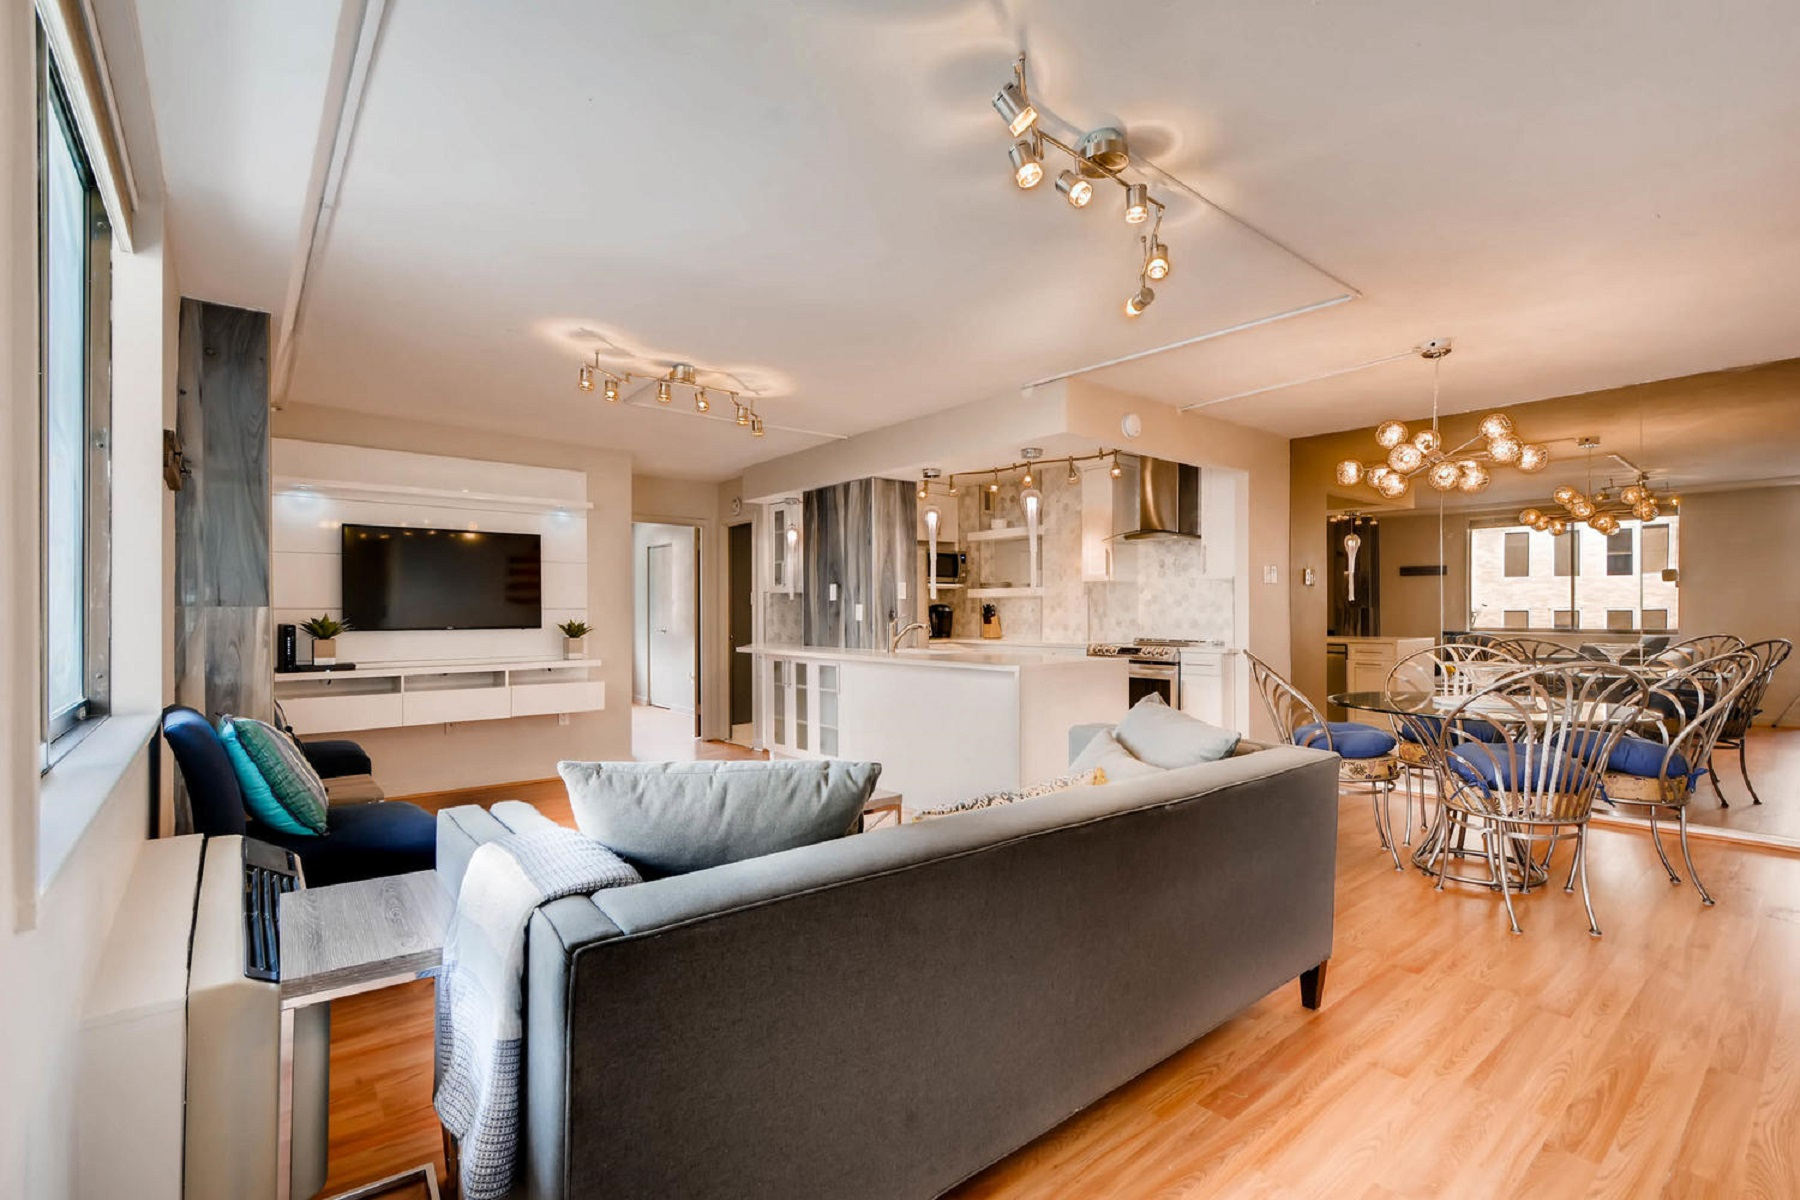 Condominium for Rent at 1325 18th St NW, #410 1325 18th Street NW, #410 Washington, District Of Columbia 20036 United States